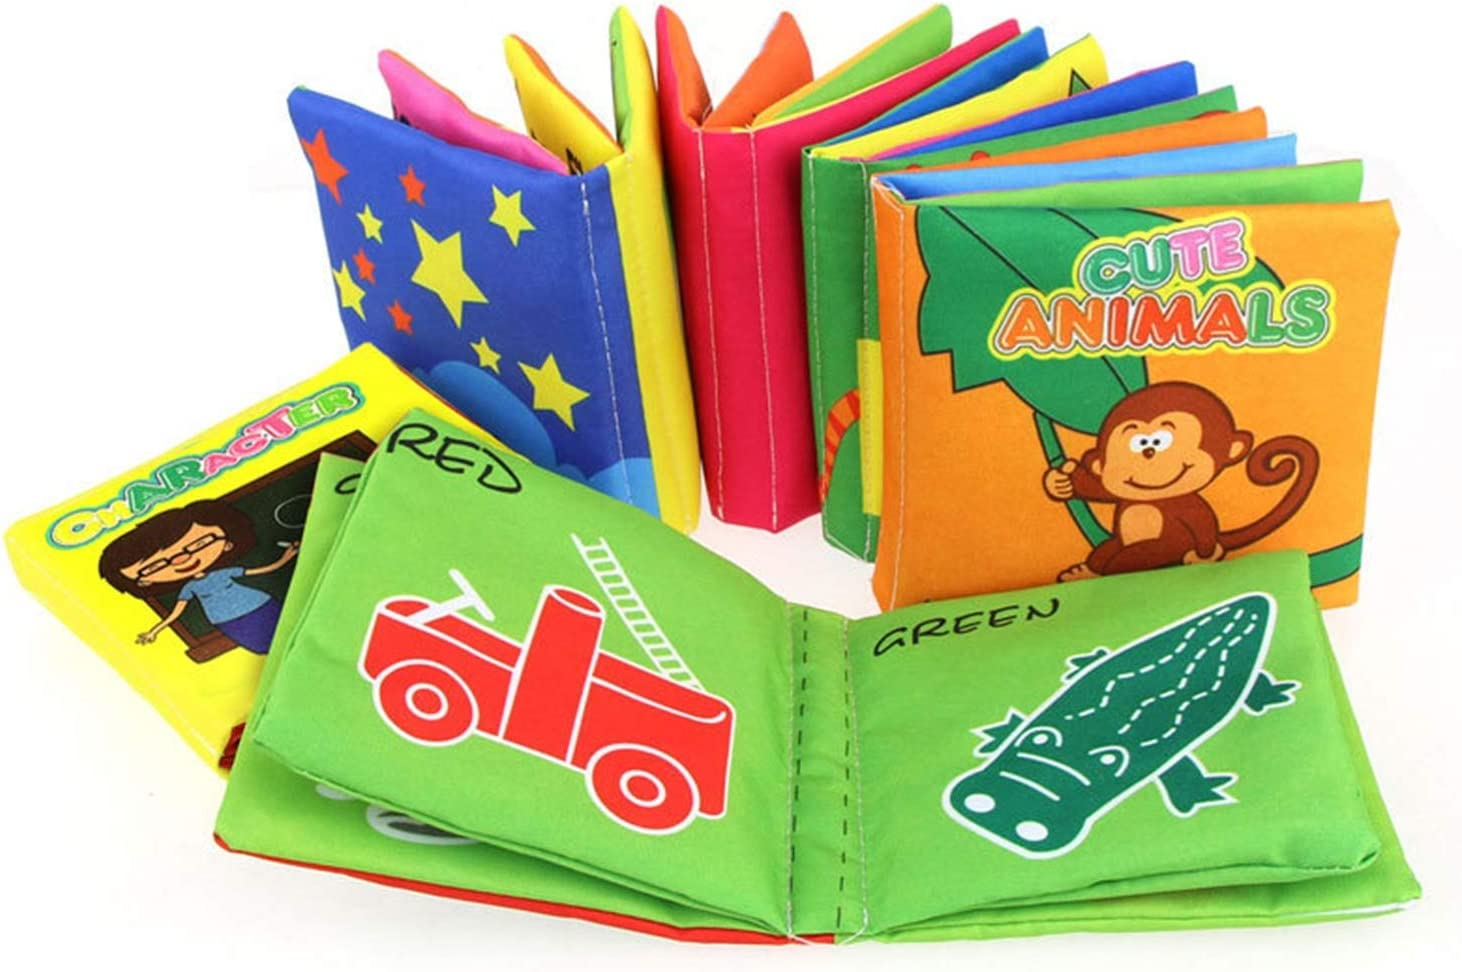 GreceMonday Grands Jouets Cadeaux pour Enfants Cartoon b/éb/é Parole Livre Intelligence Development Education Jouets Colorful